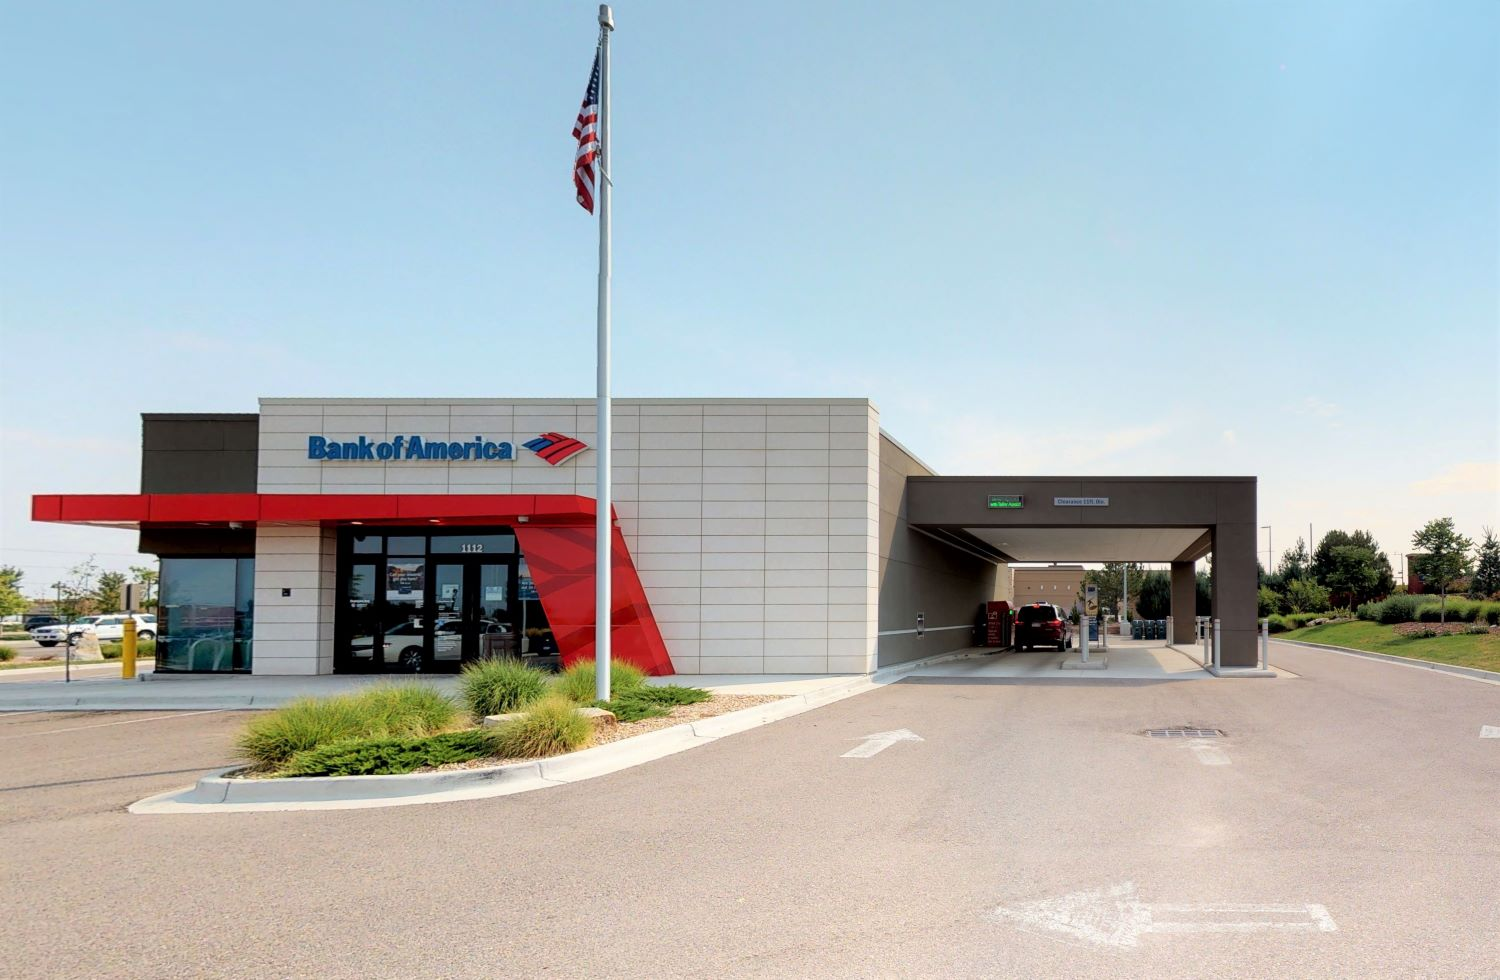 Bank of America financial center with drive-thru ATM | 1112 Cpl Max Donahue Ln, Highlands Ranch, CO 80129